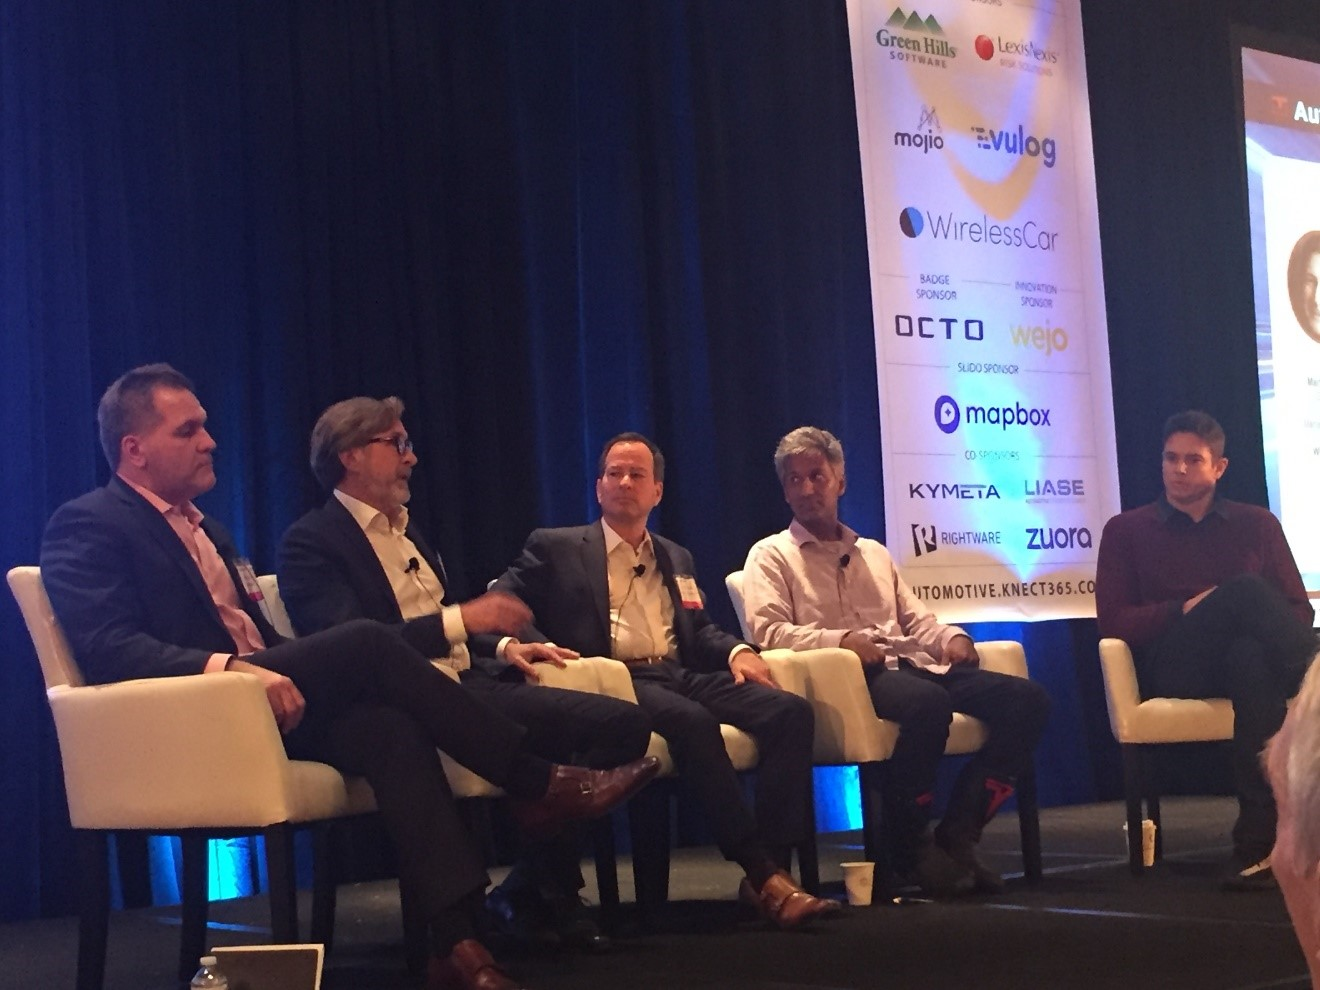 John Bukowicz, Managing Director Americas, LIASE Group speaking on a panel at the 2018 Consumer Telematics Show with Martin Rossell, Managing Director, WirelessCar; Rahul Sonnad, CEO & Co-Founder, Tesloop; Cletus Nunes, Director of Sales, Octo Telematics North America; Russ Lemmer, EVP of Mobility, Silvercar.